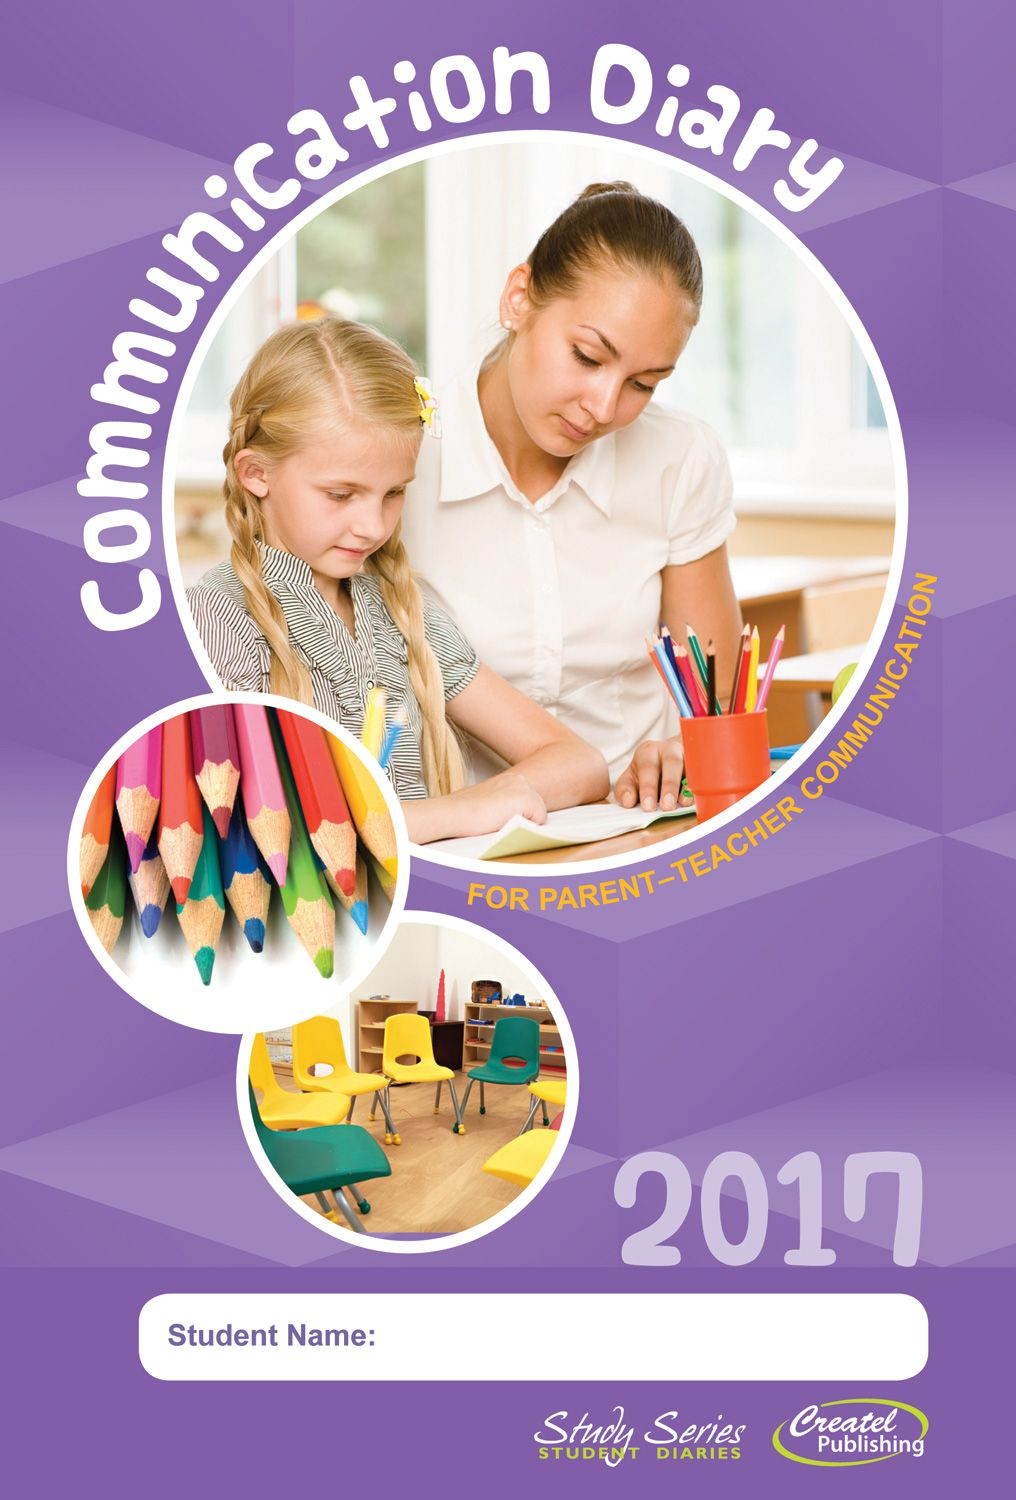 The Communication Diary is the perfect homeschool